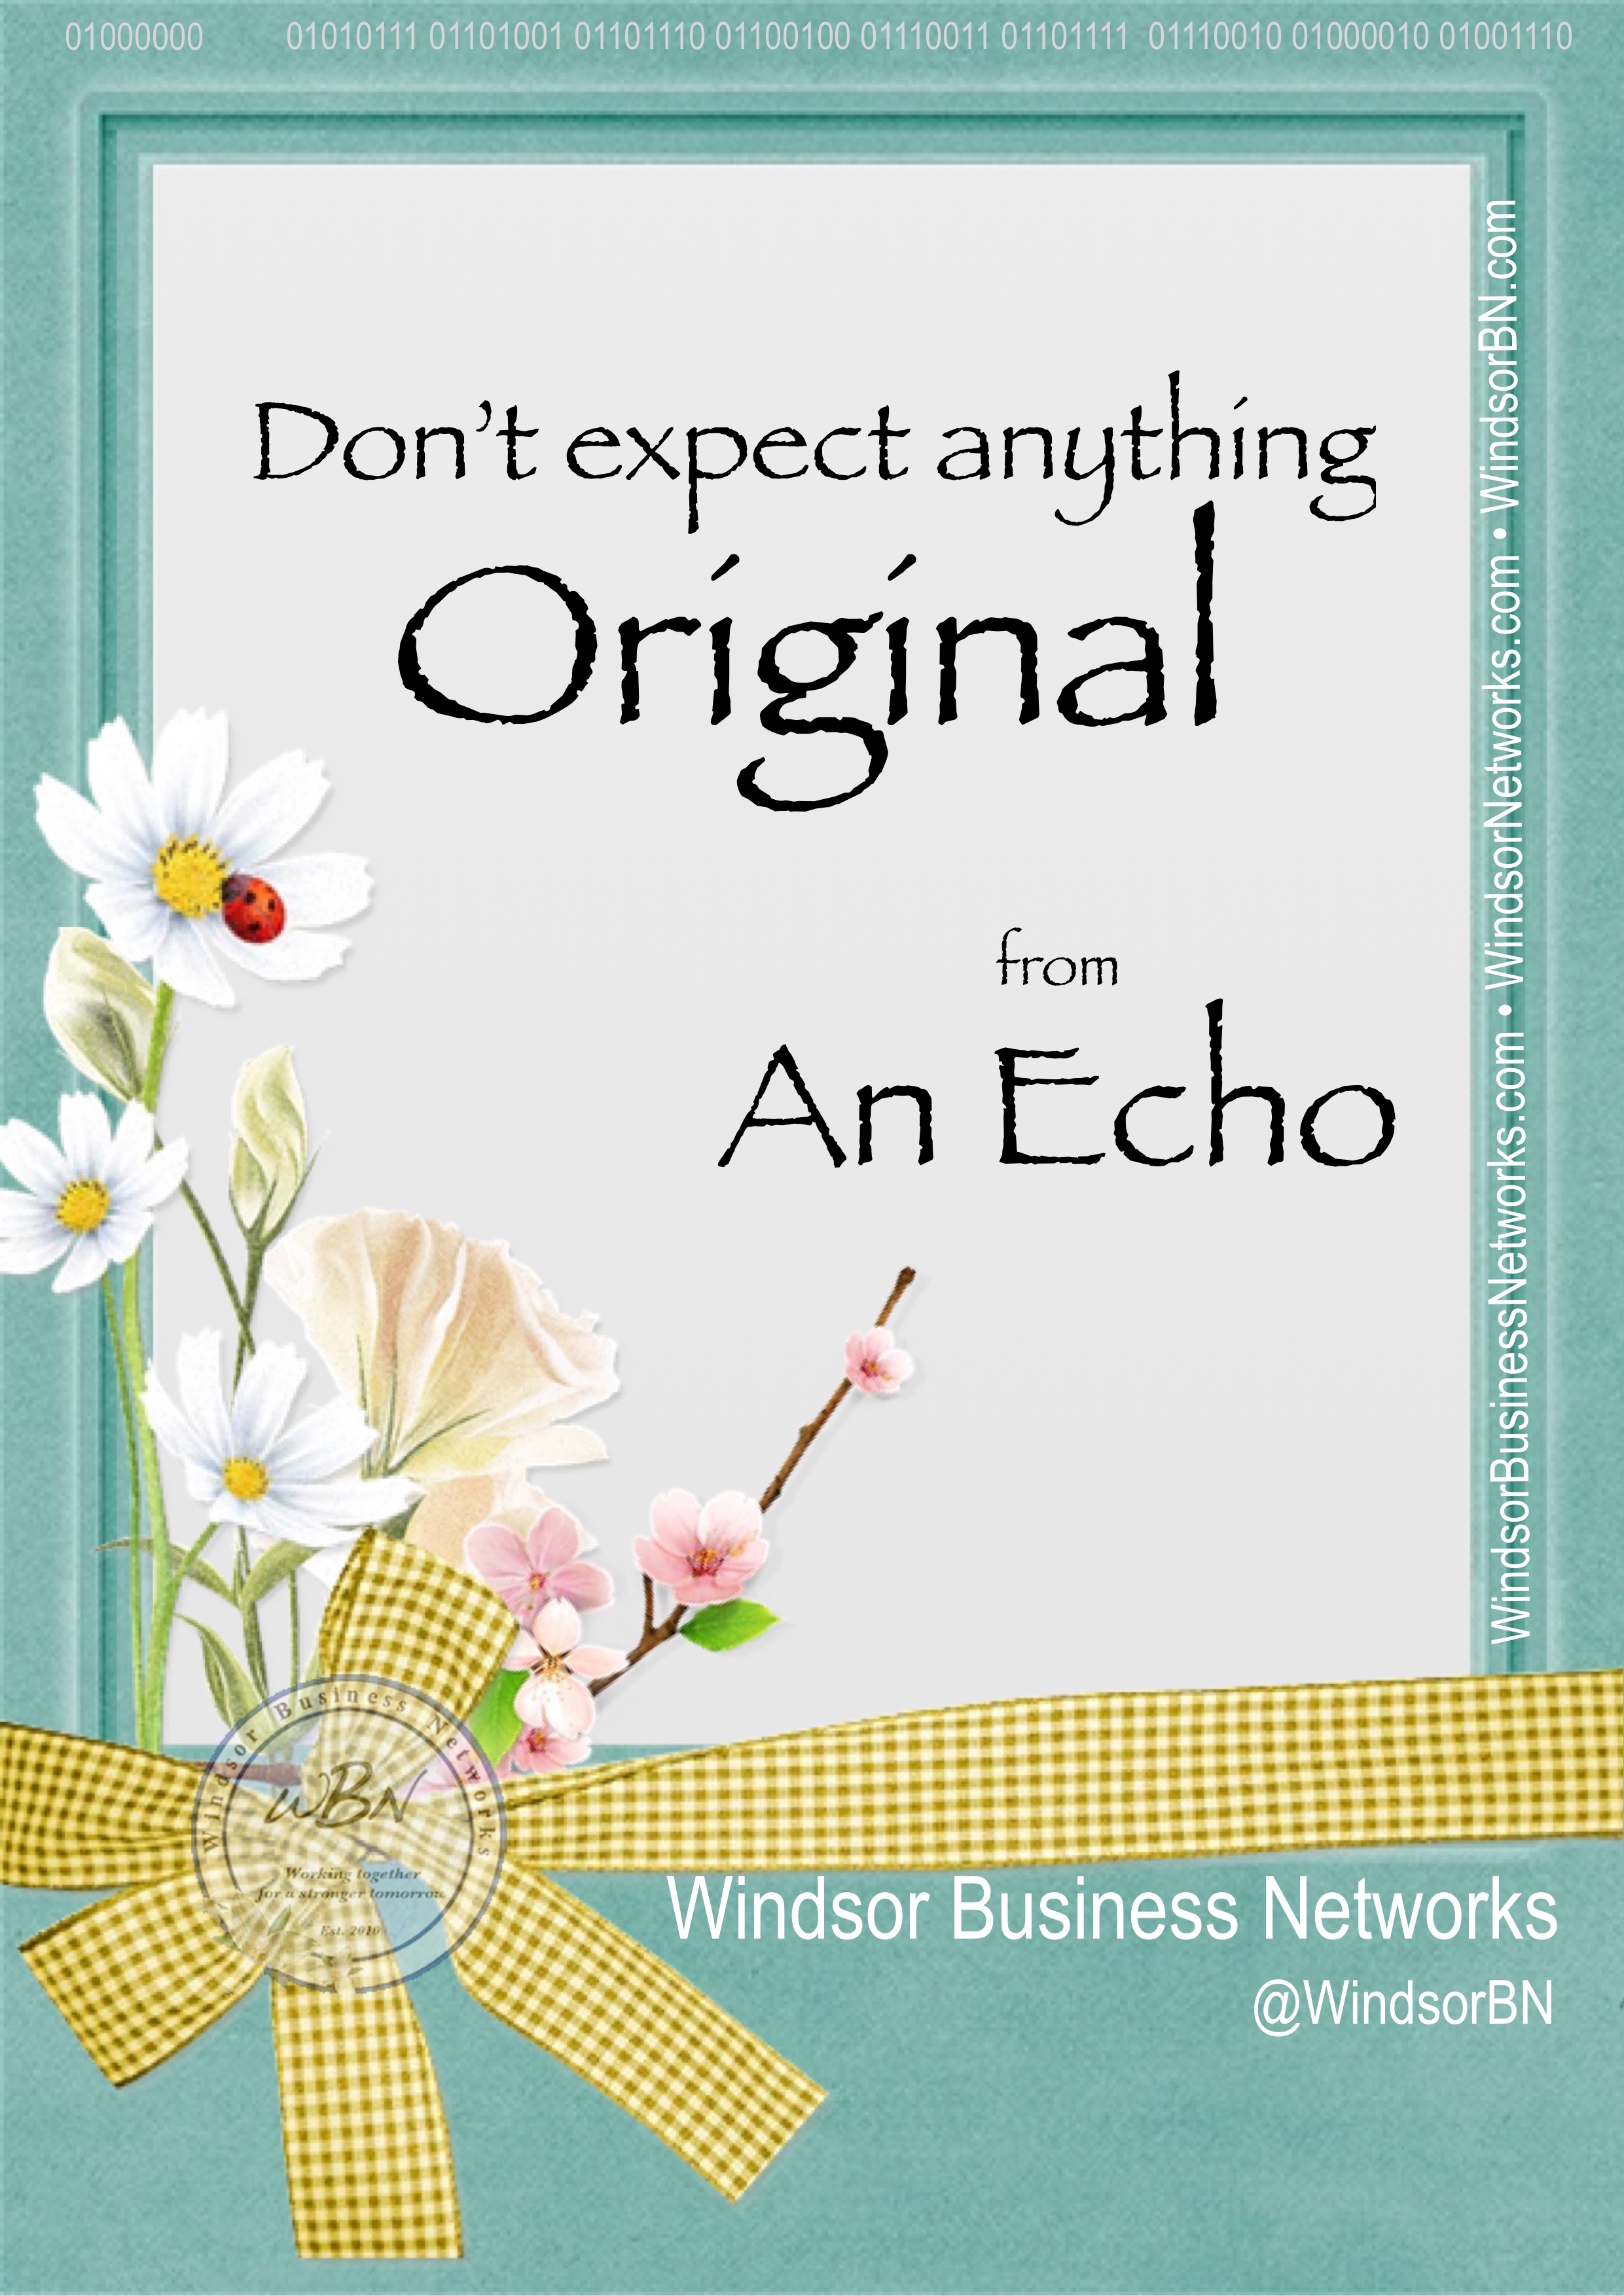 Don't expect anything original from an echo